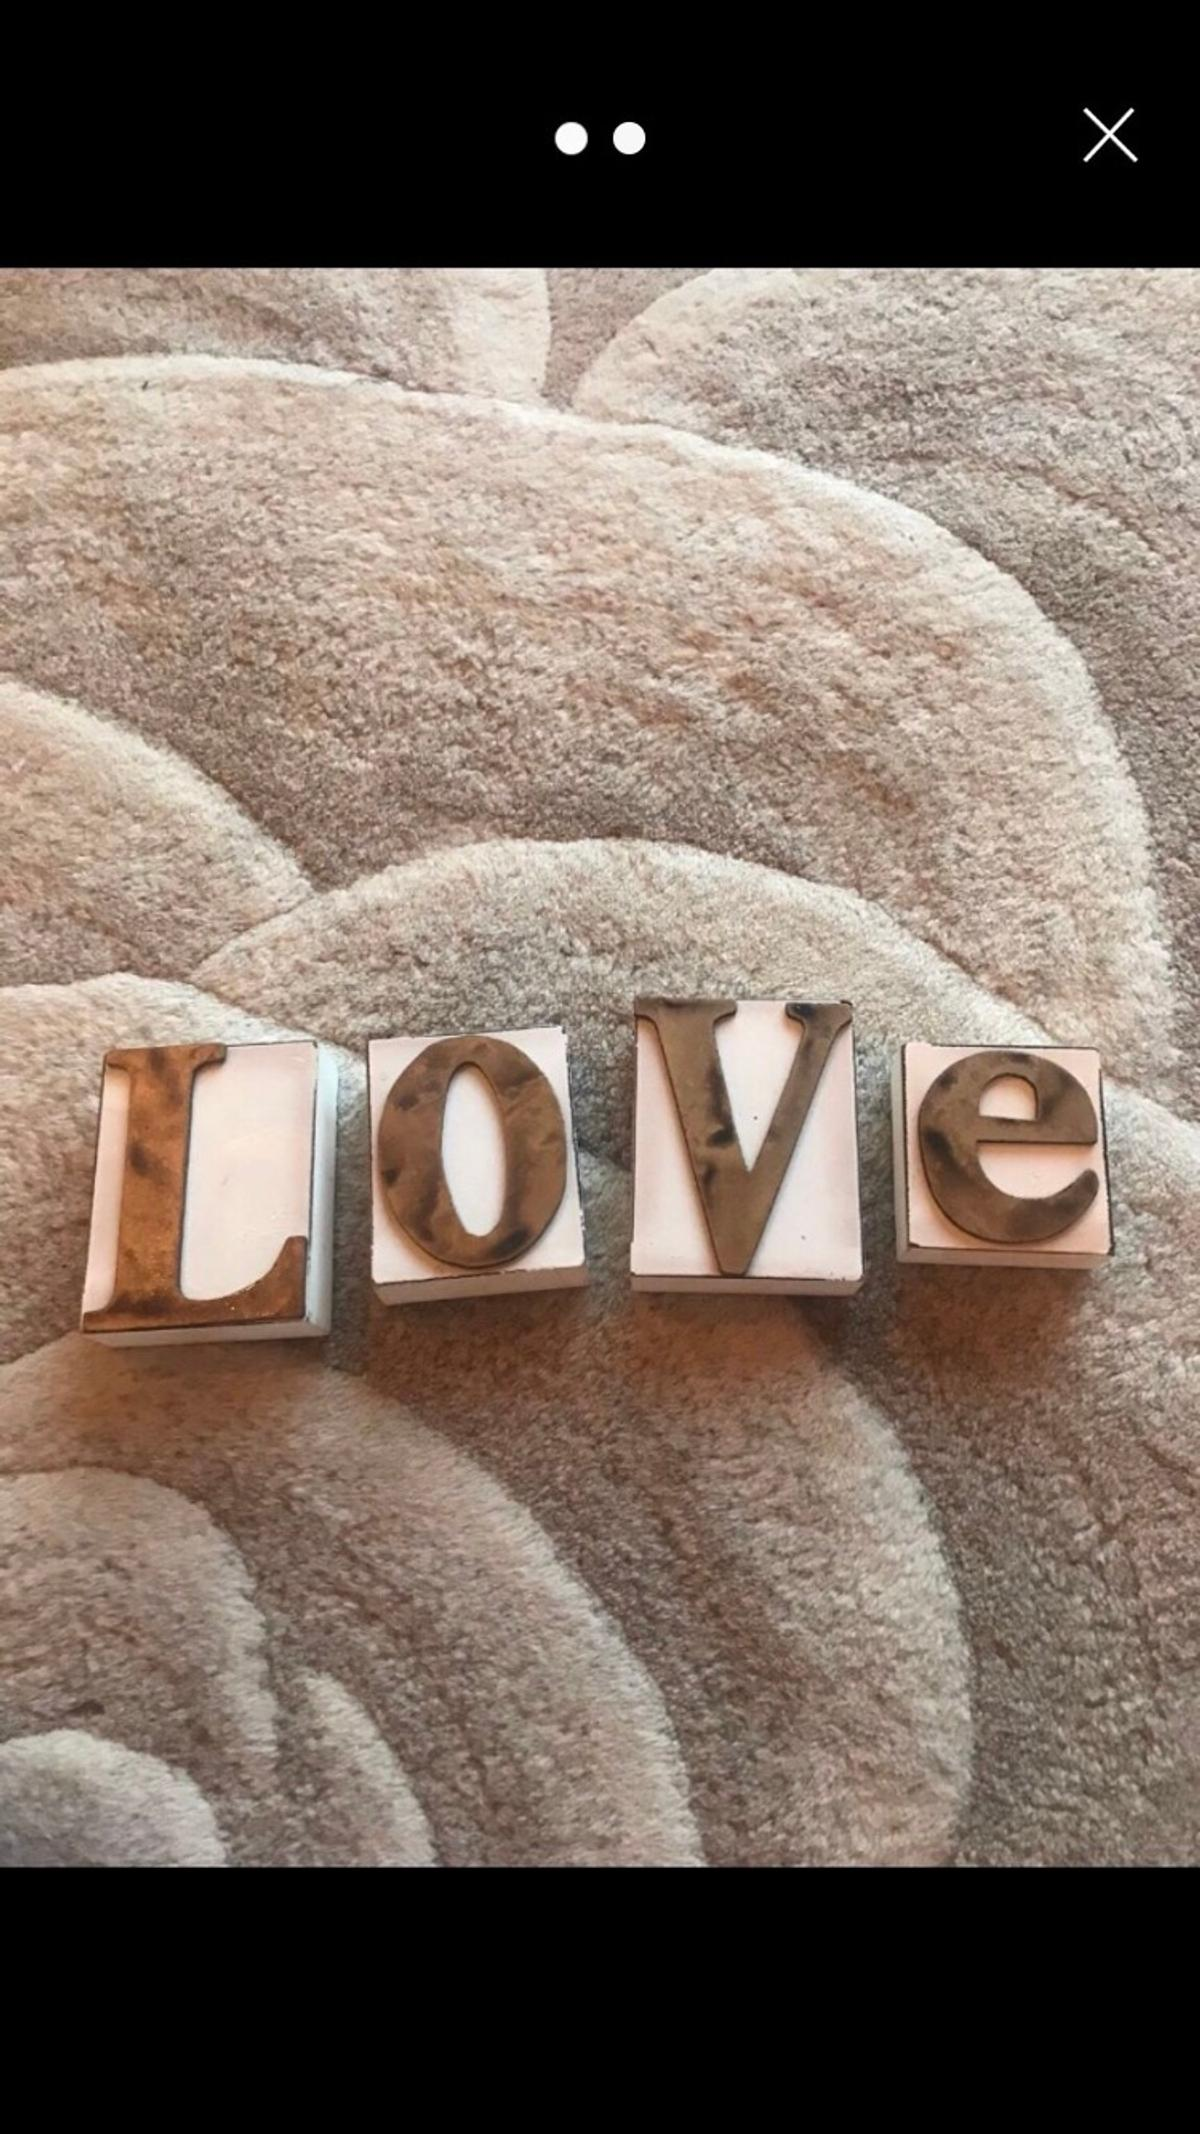 L O V E stand up letters. Only selling due to a change in decor.  Smoke free and pet free home 🏡 . Collection only please 🚗. Check out my page, I have a large variety of items for sale. Reasonable offers considered❓ No time wasters please 🤚